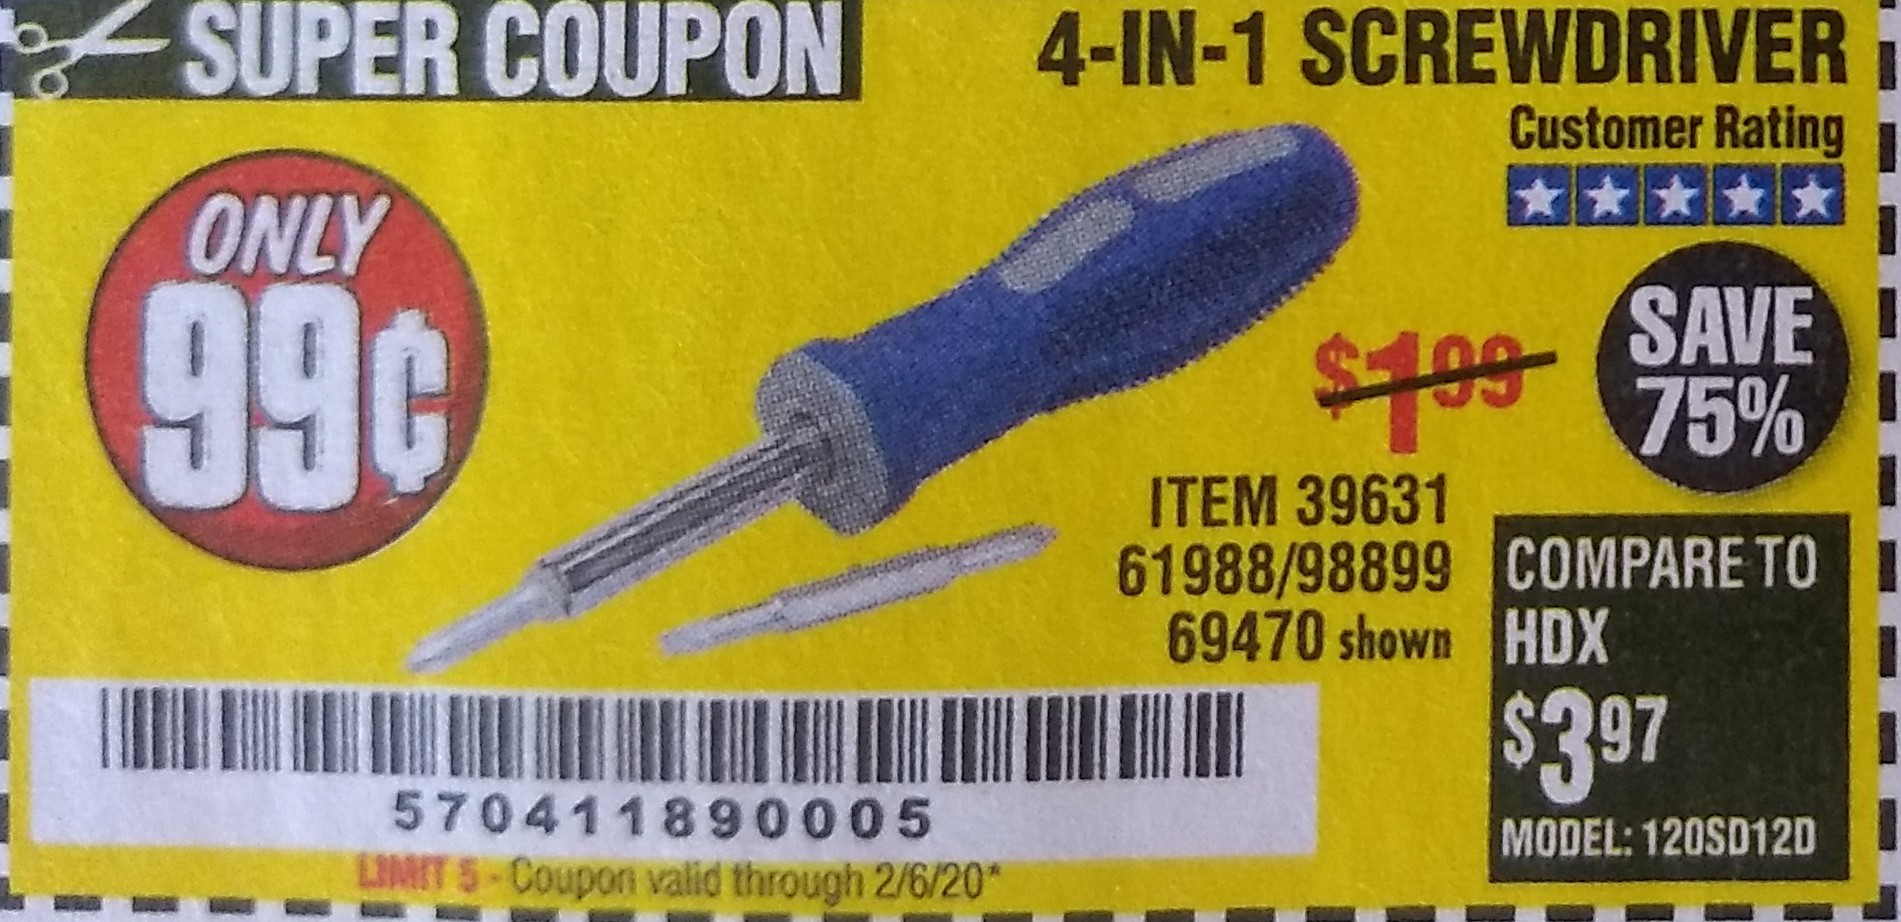 www.hfqpdb.com - 4-IN-1 SCREWDRIVER Lot No. 98899/69470/61988